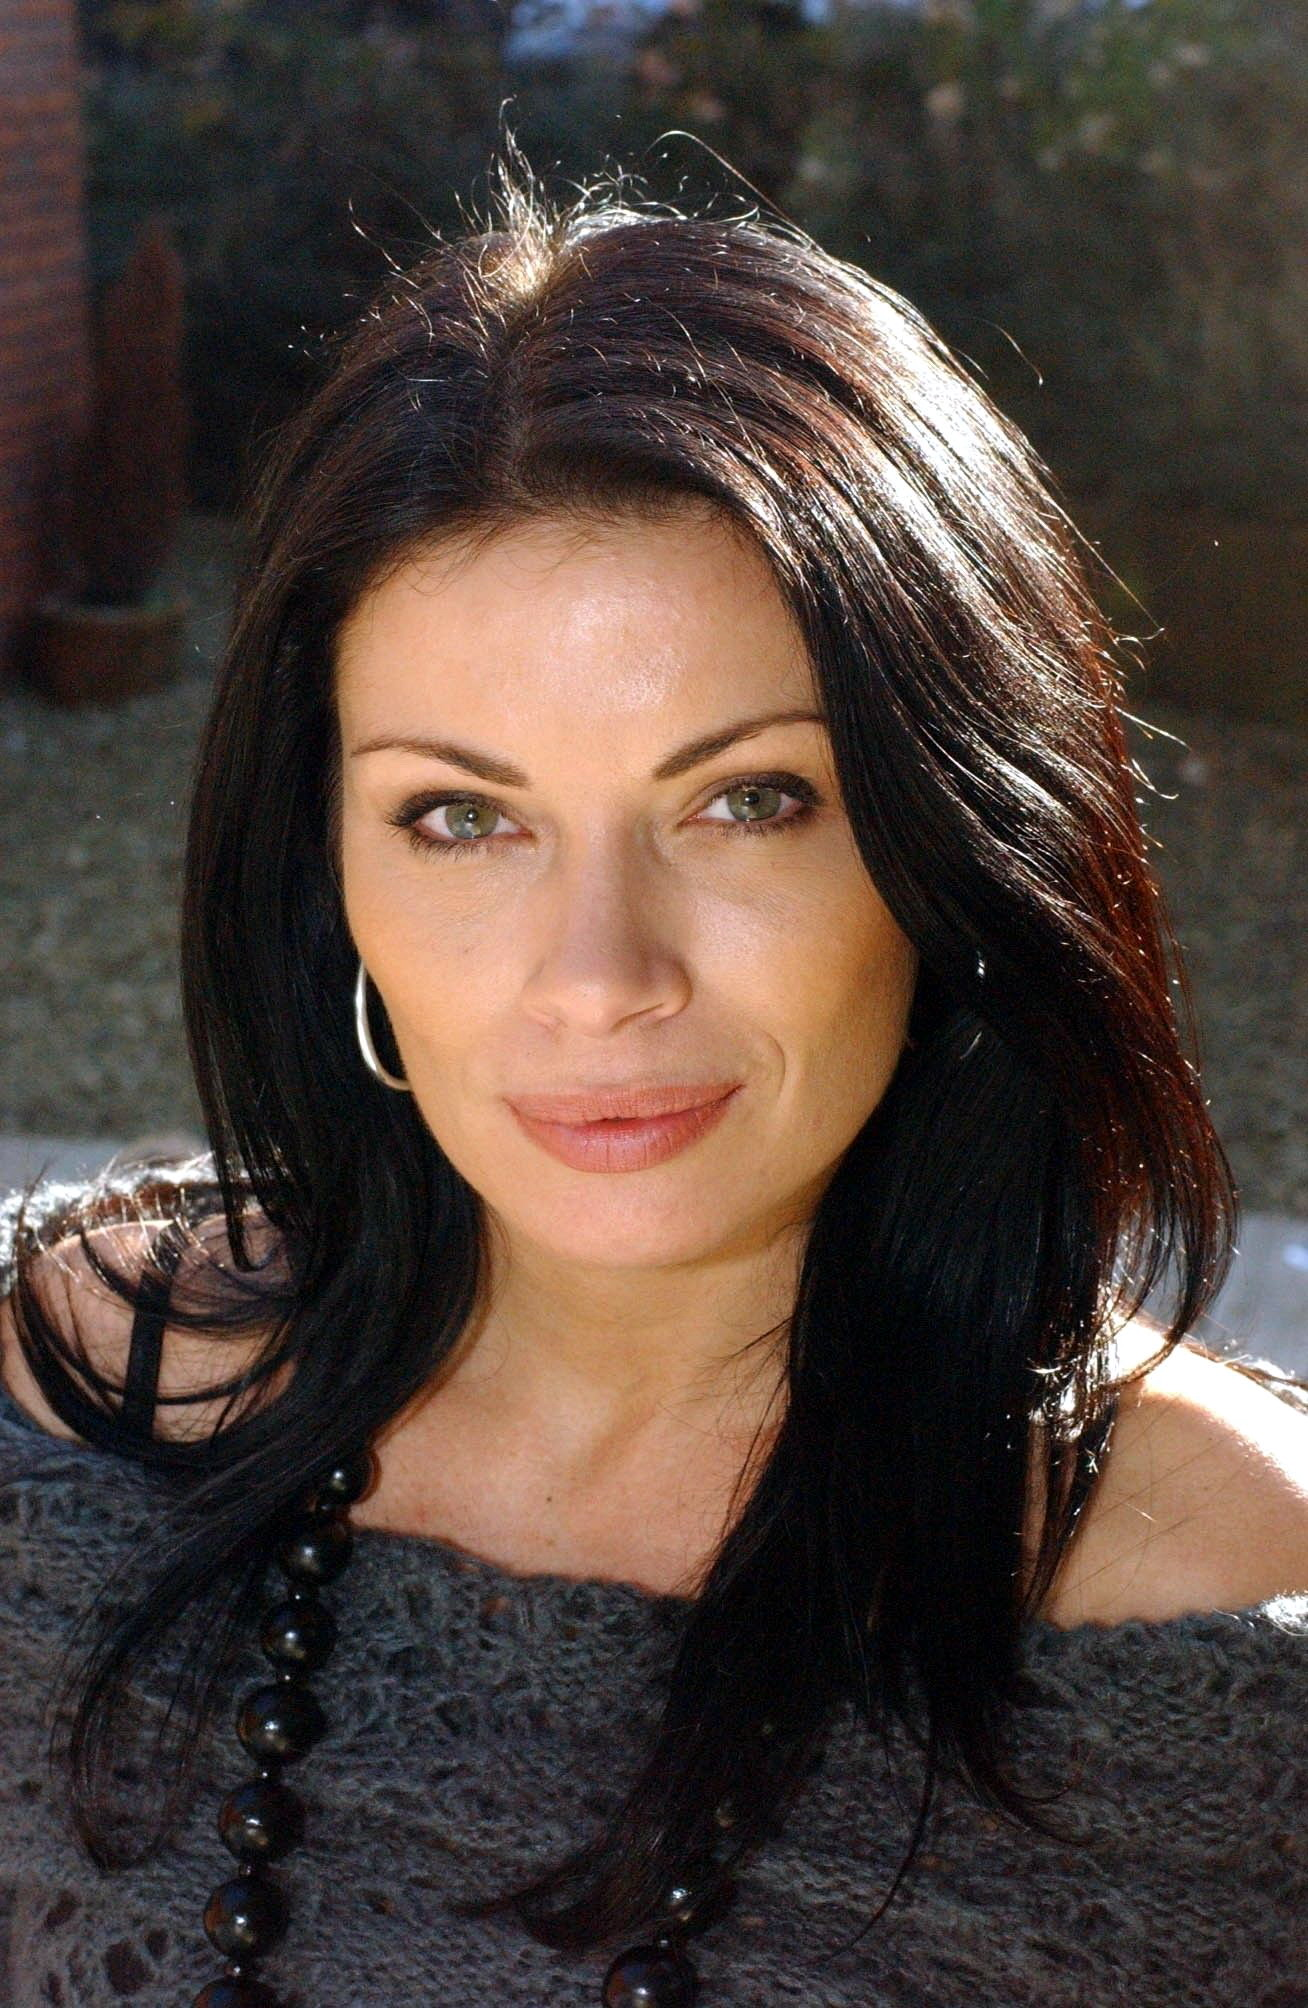 Alison-King-as-Carla-on-Coronation-Street-wallpaper-wp5803367